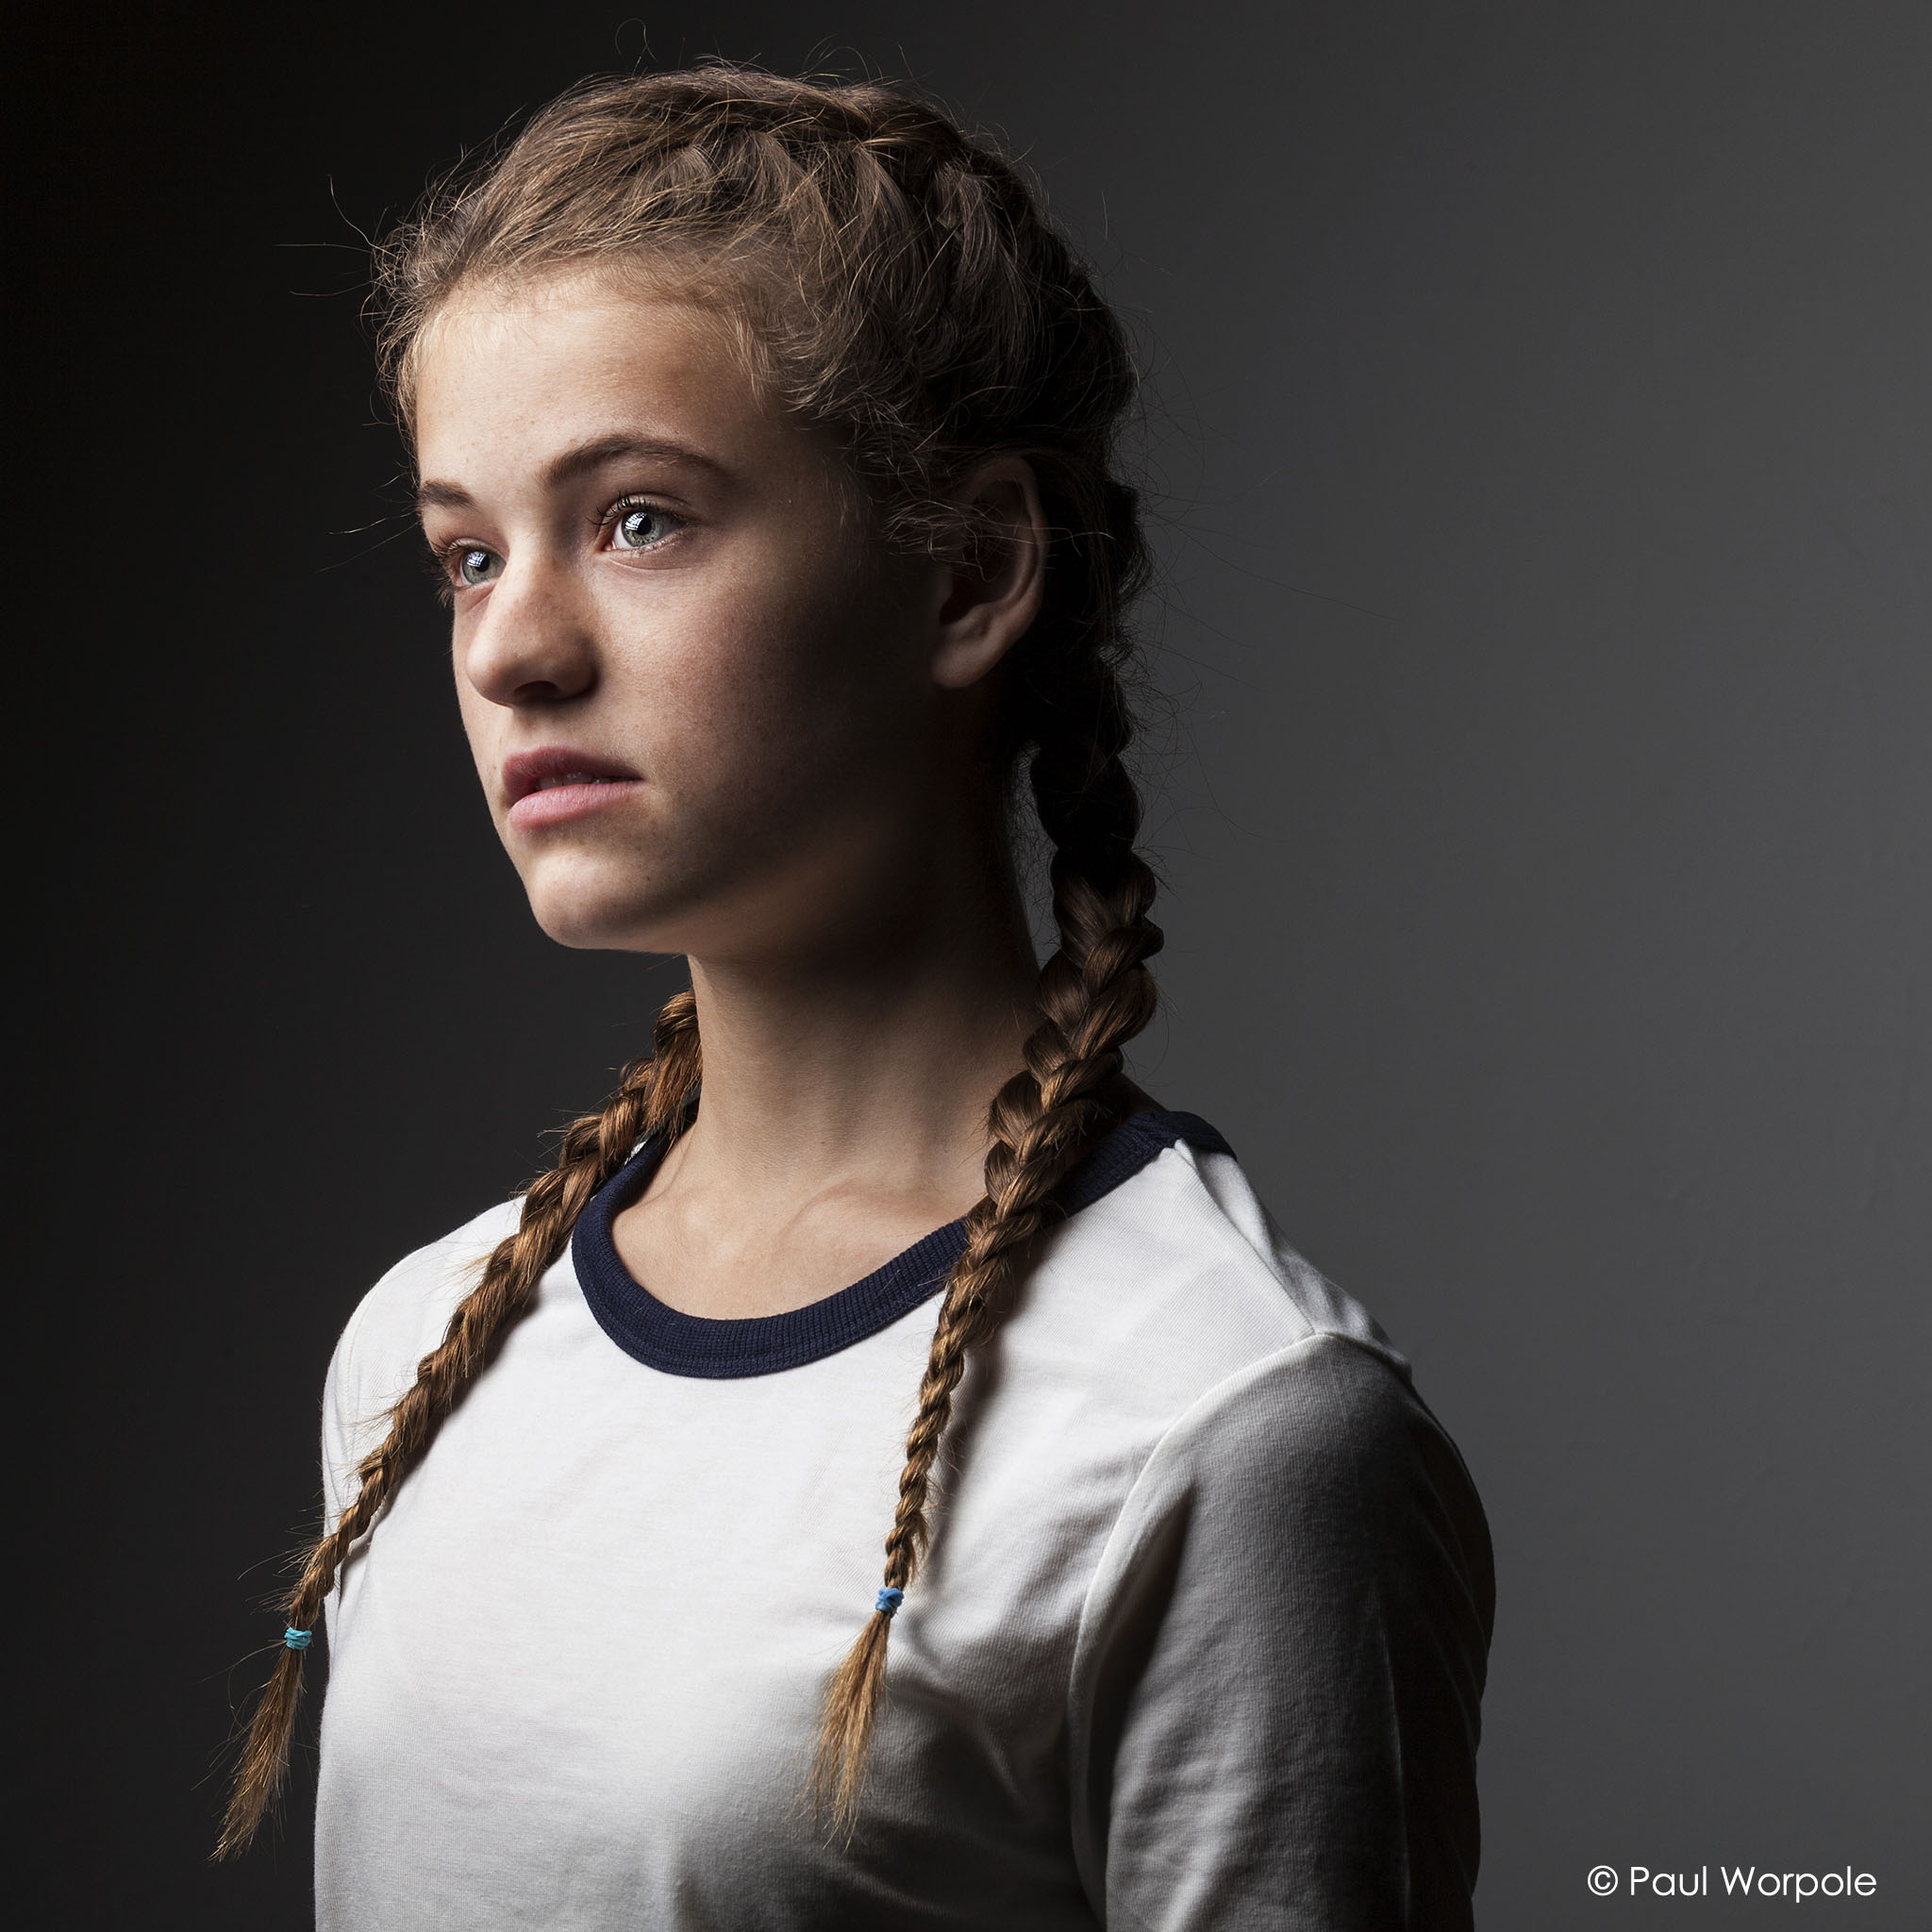 Portrait Photography of girl with pigtails in white t shirt © Paul Worpole Photography